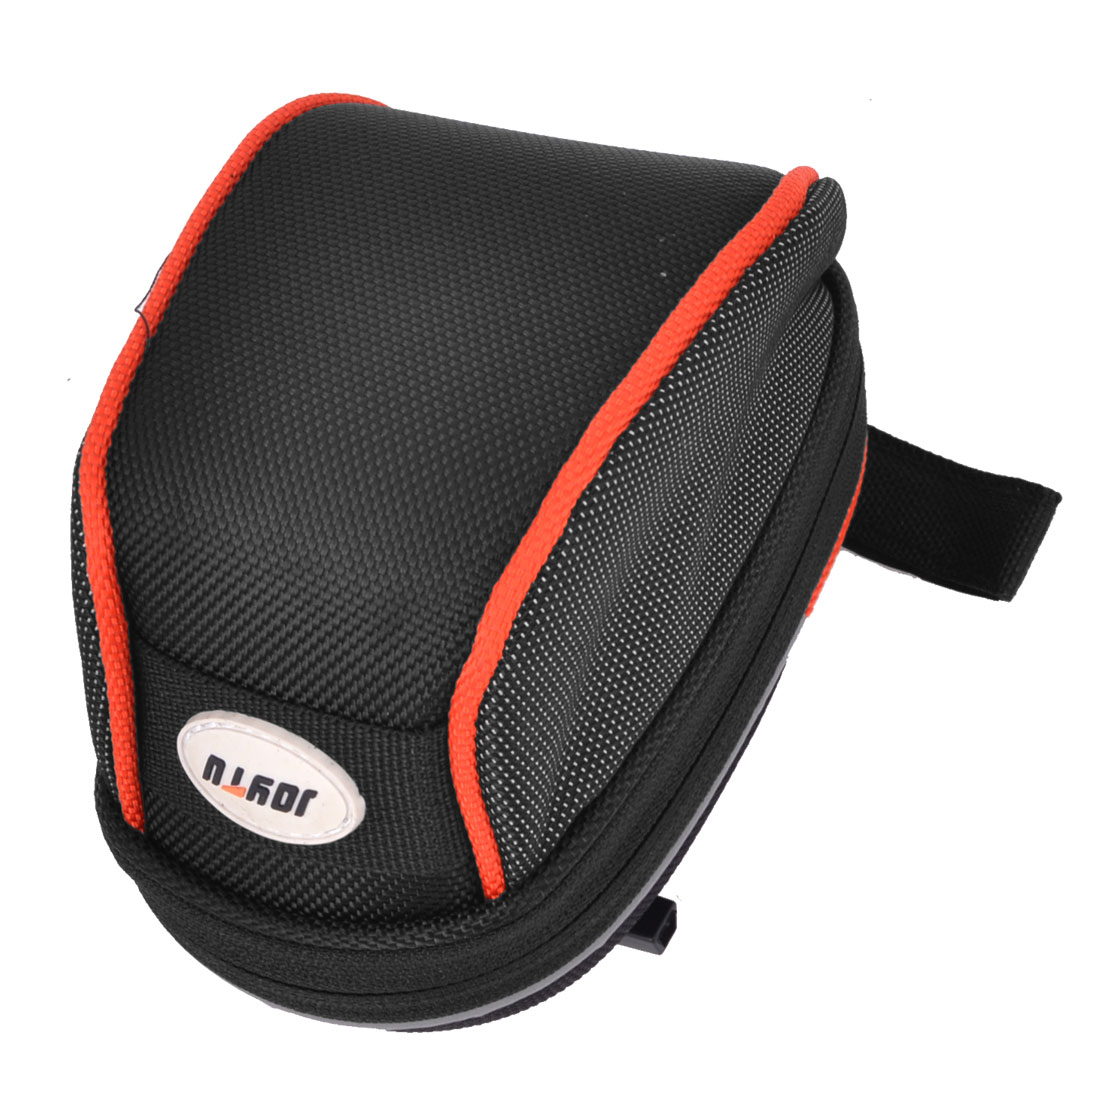 Road Bicycle Cycling Riding Saddle Seat Rear Tail Bag Case Pouch Black Red